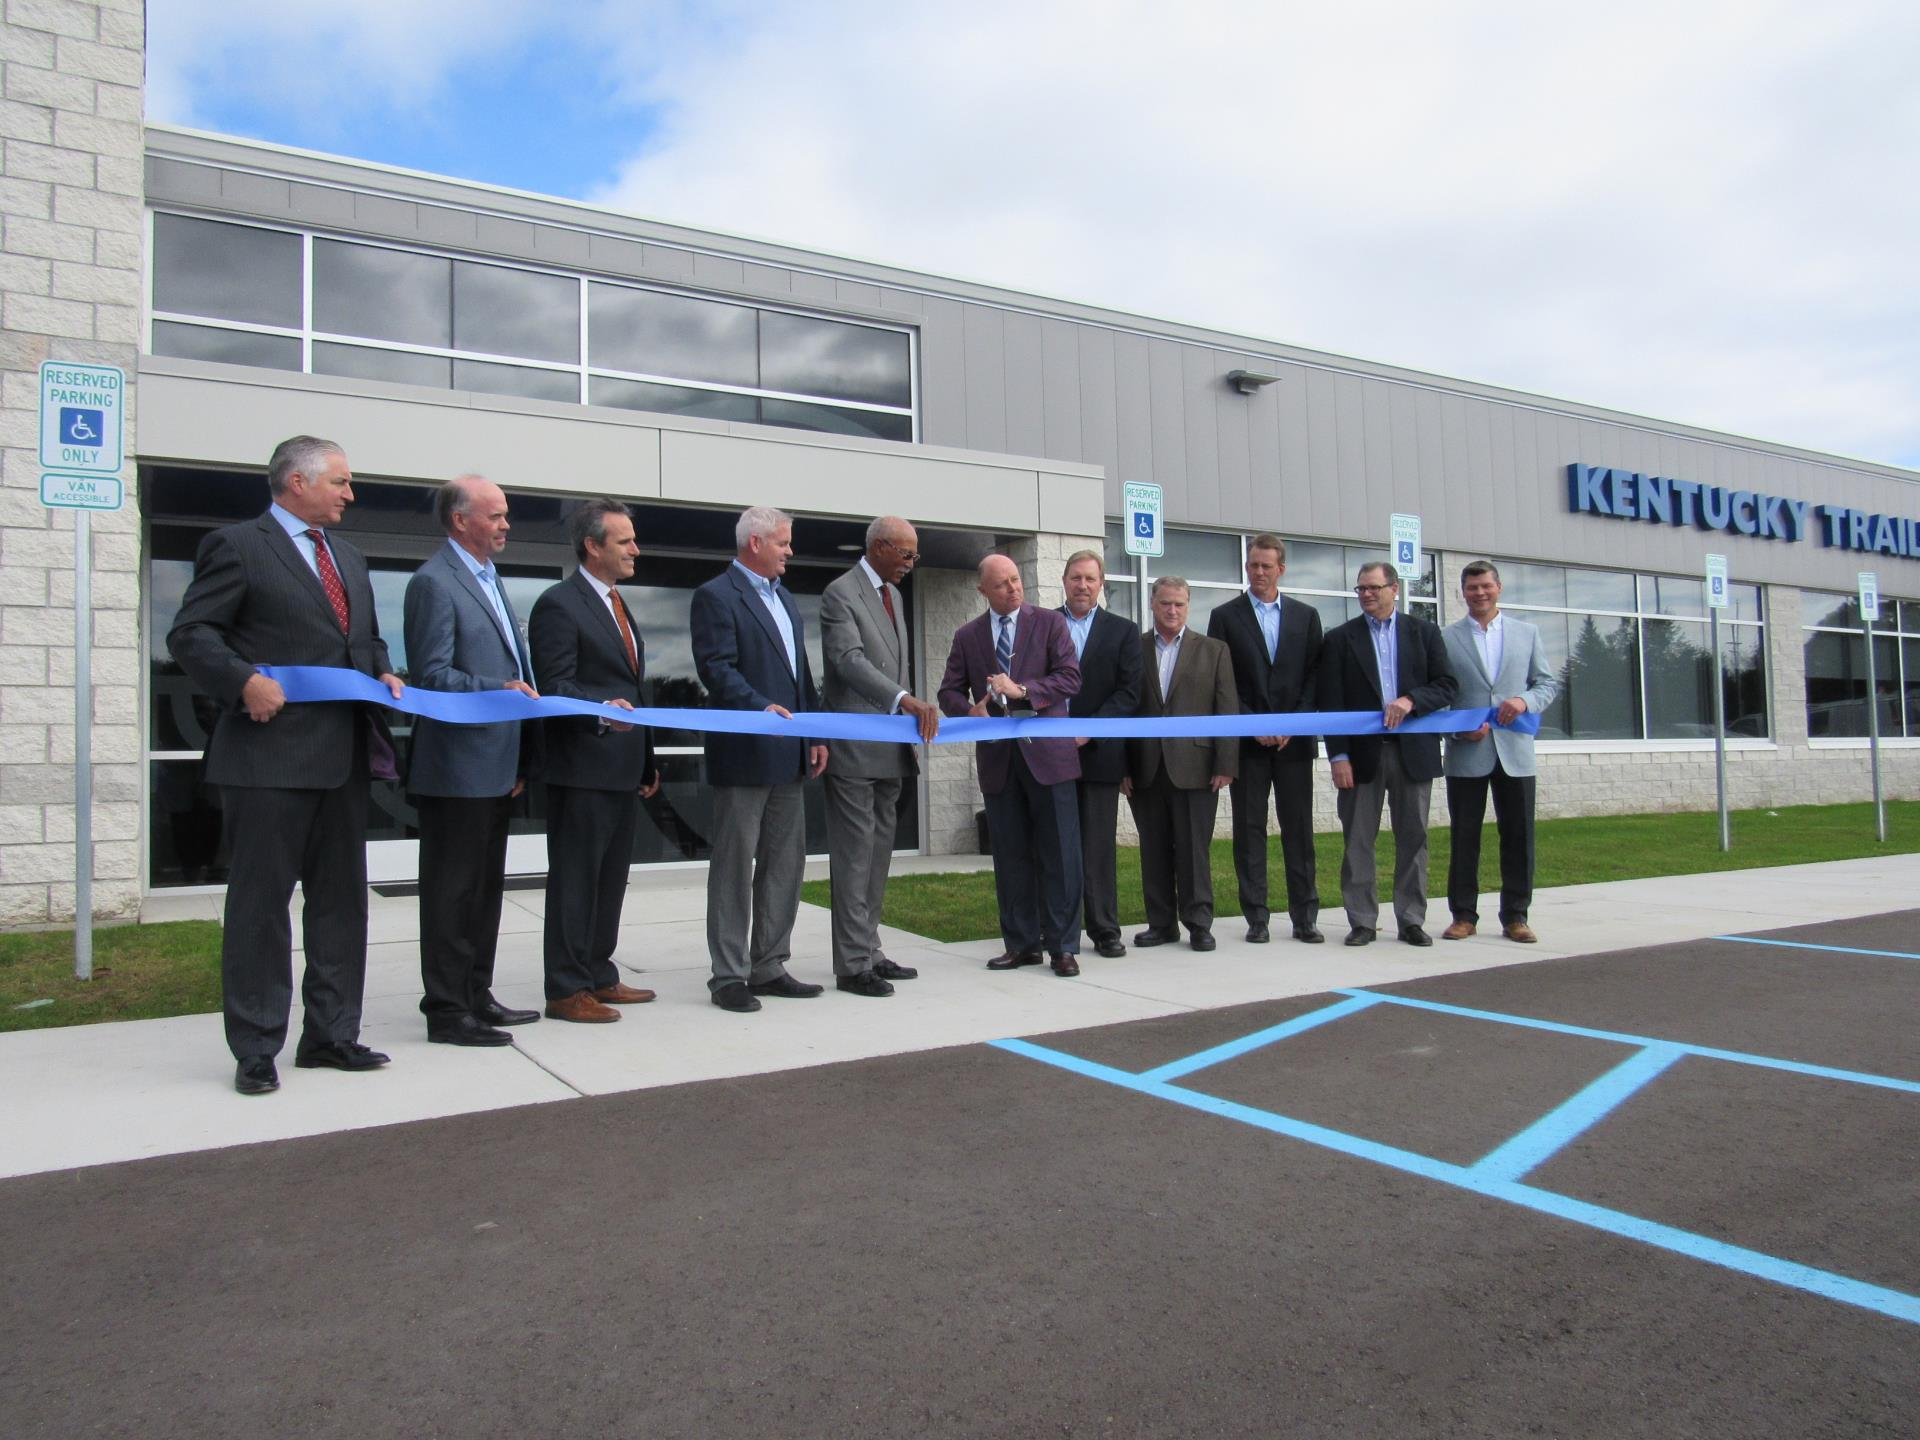 Kentucky Tlr Ribbon Cutting_Oct 2018 029